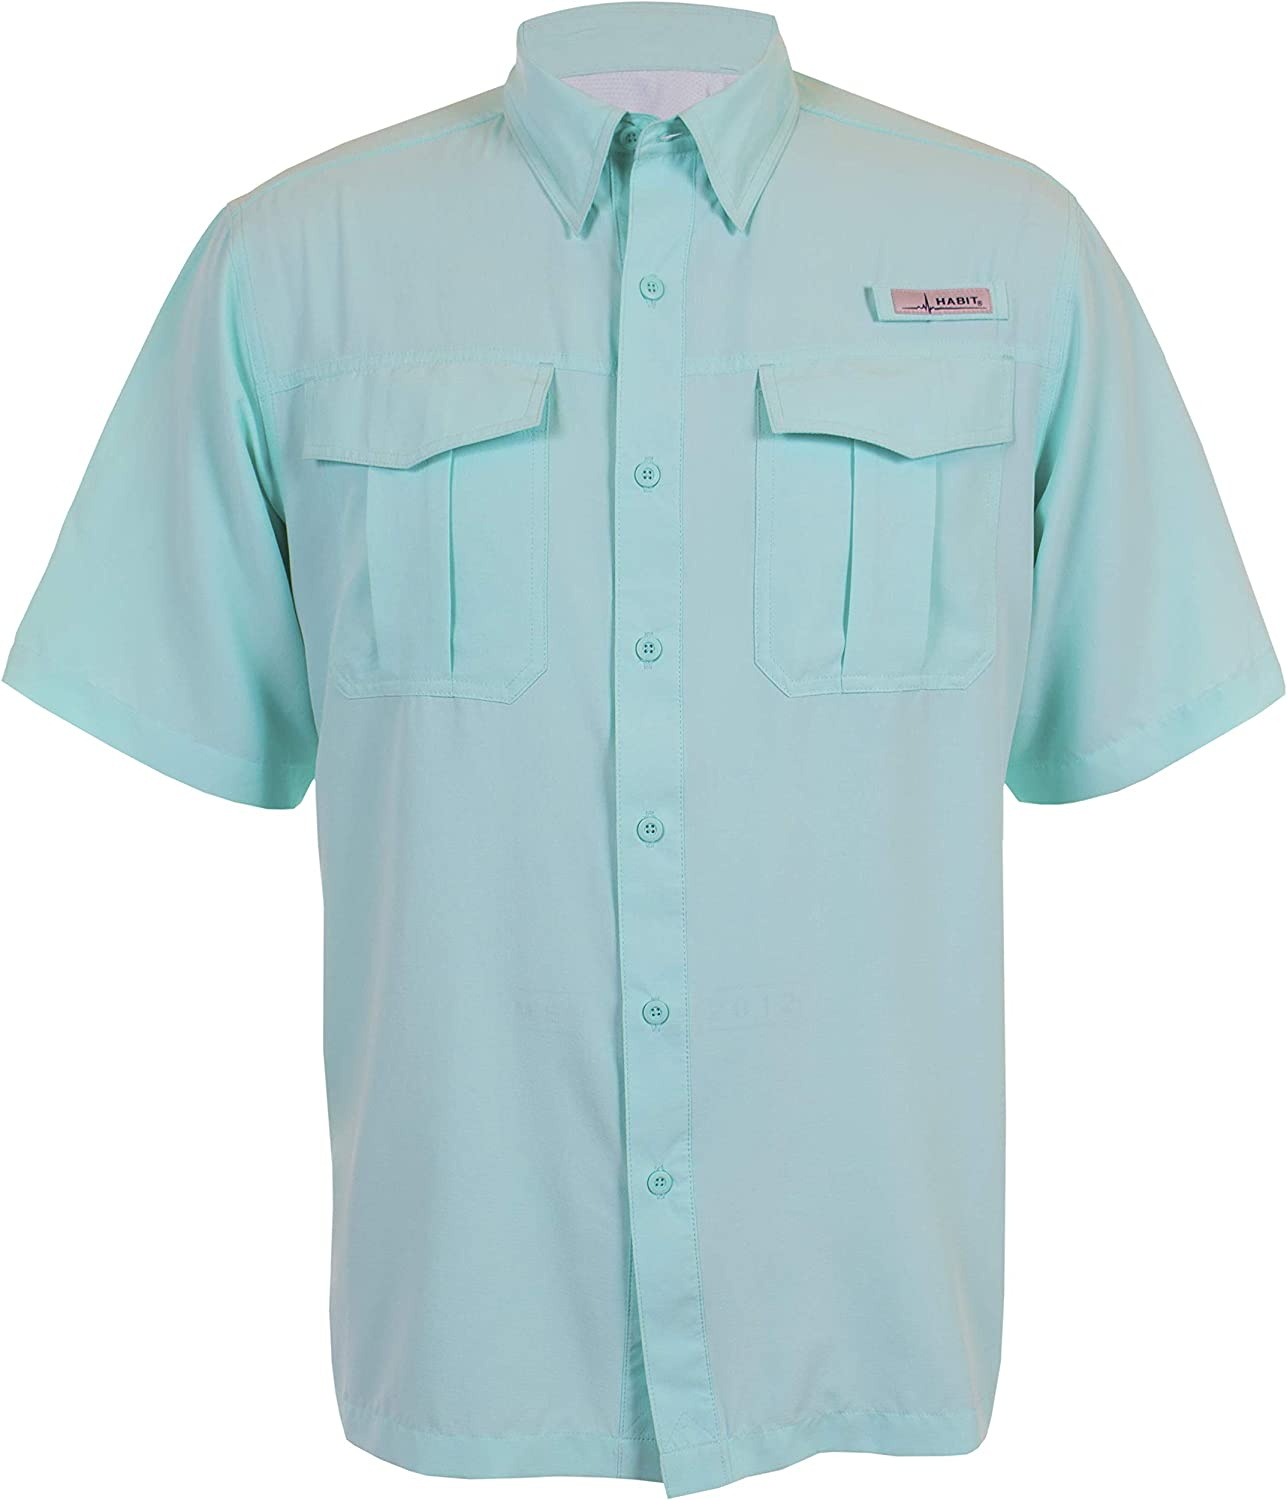 HABIT Men's Standard Belcoast Short Sleeve River Guide Fishing Shirt, Aruba Blue, Small